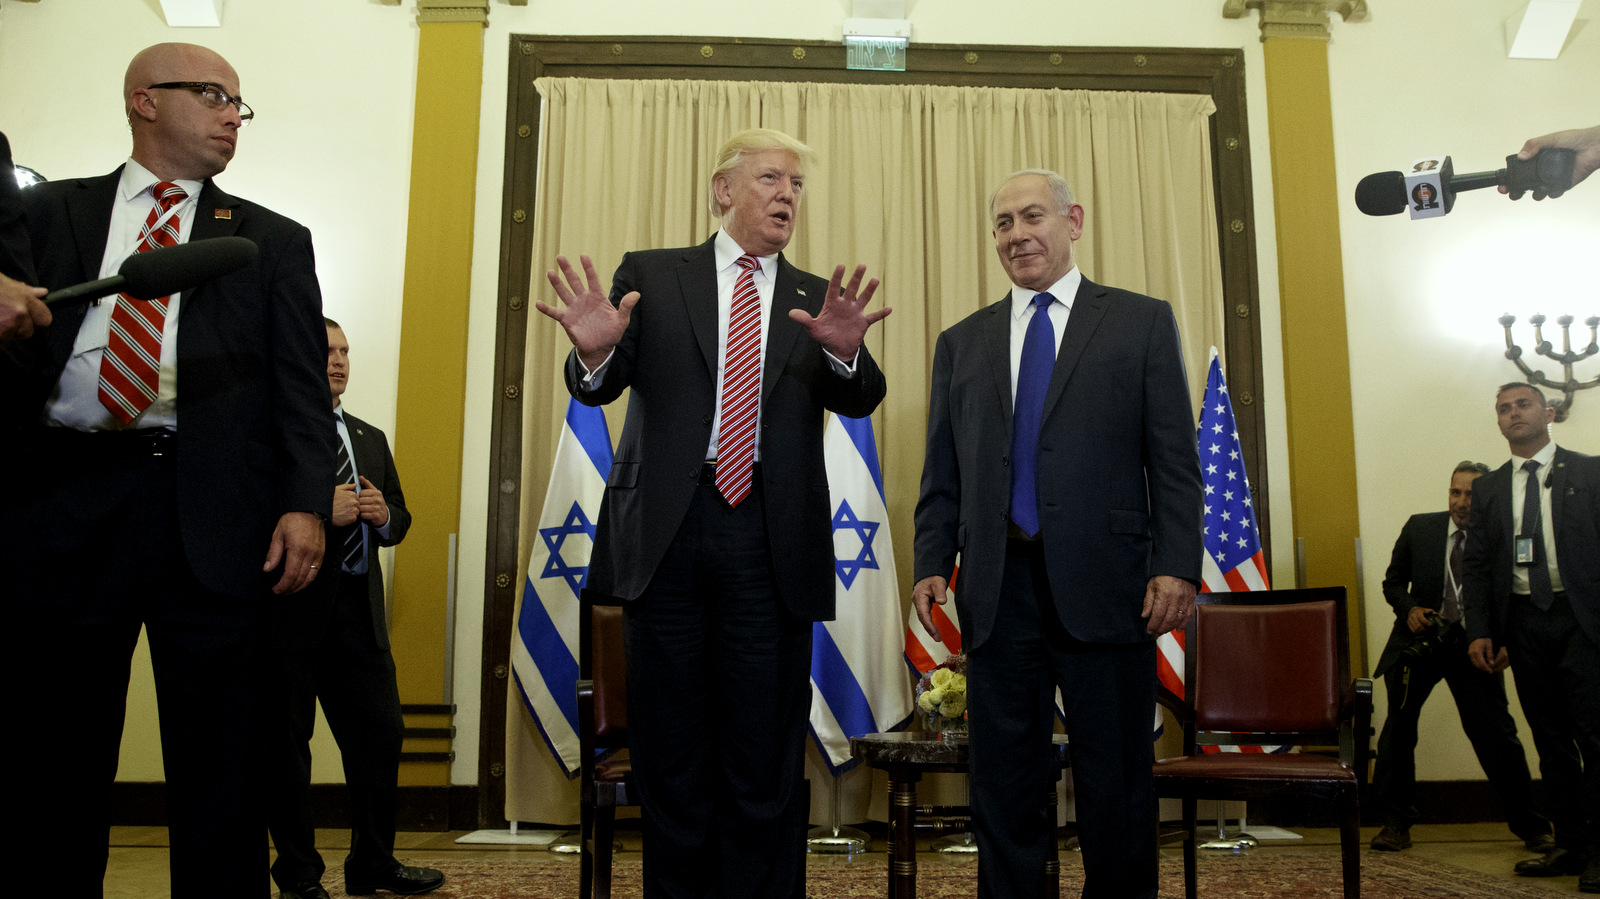 President Donald Trump talks to reporters before a meeting with Israeli Prime Minister Benjamin Netanyahu, May 22, 2017, in Jerusalem. (AP/Evan Vucci)